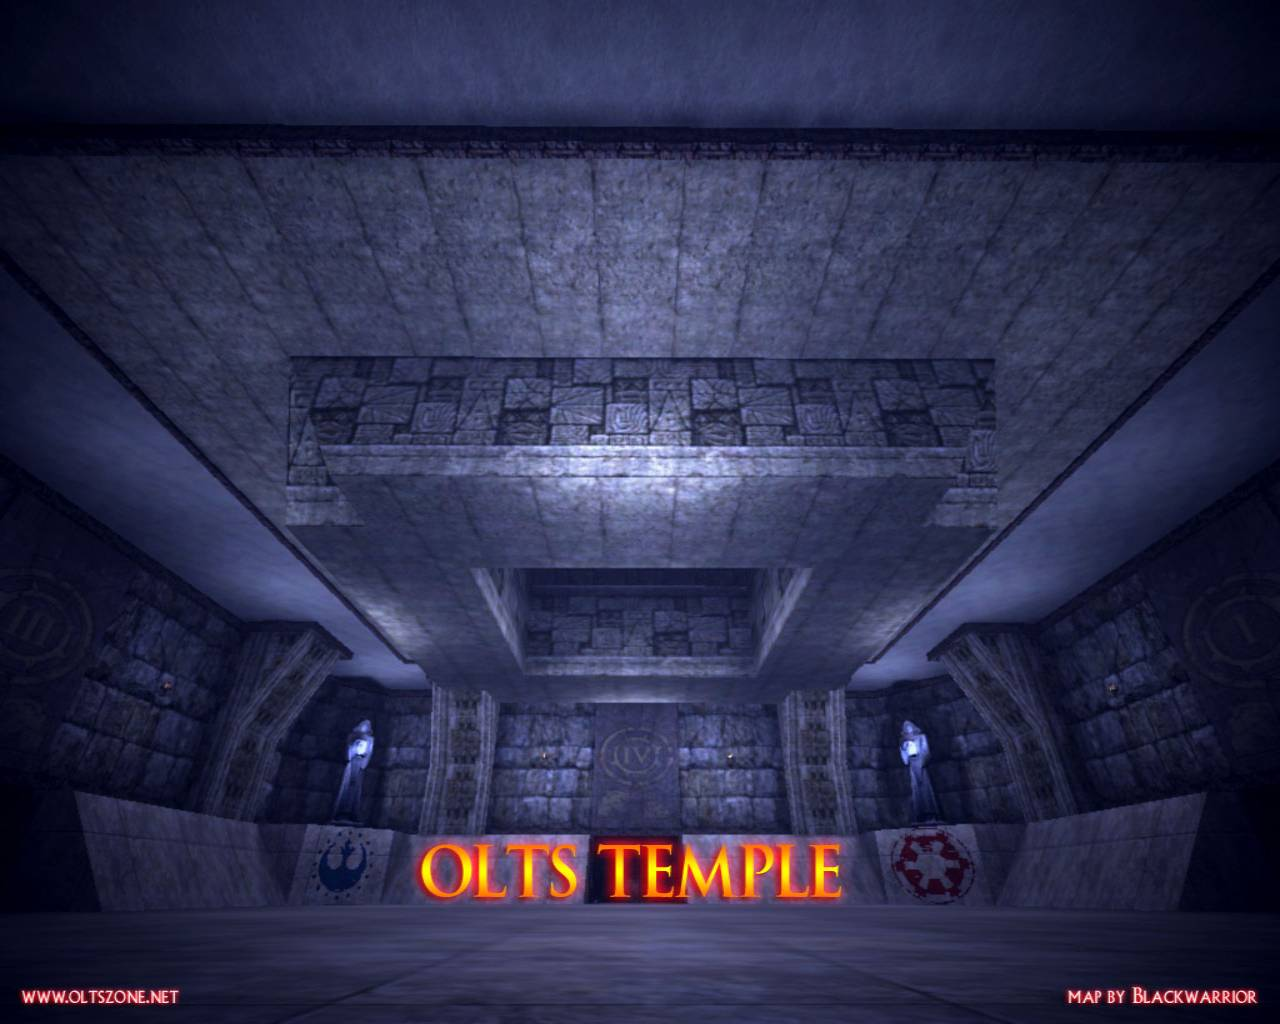 OLTS_temple_0